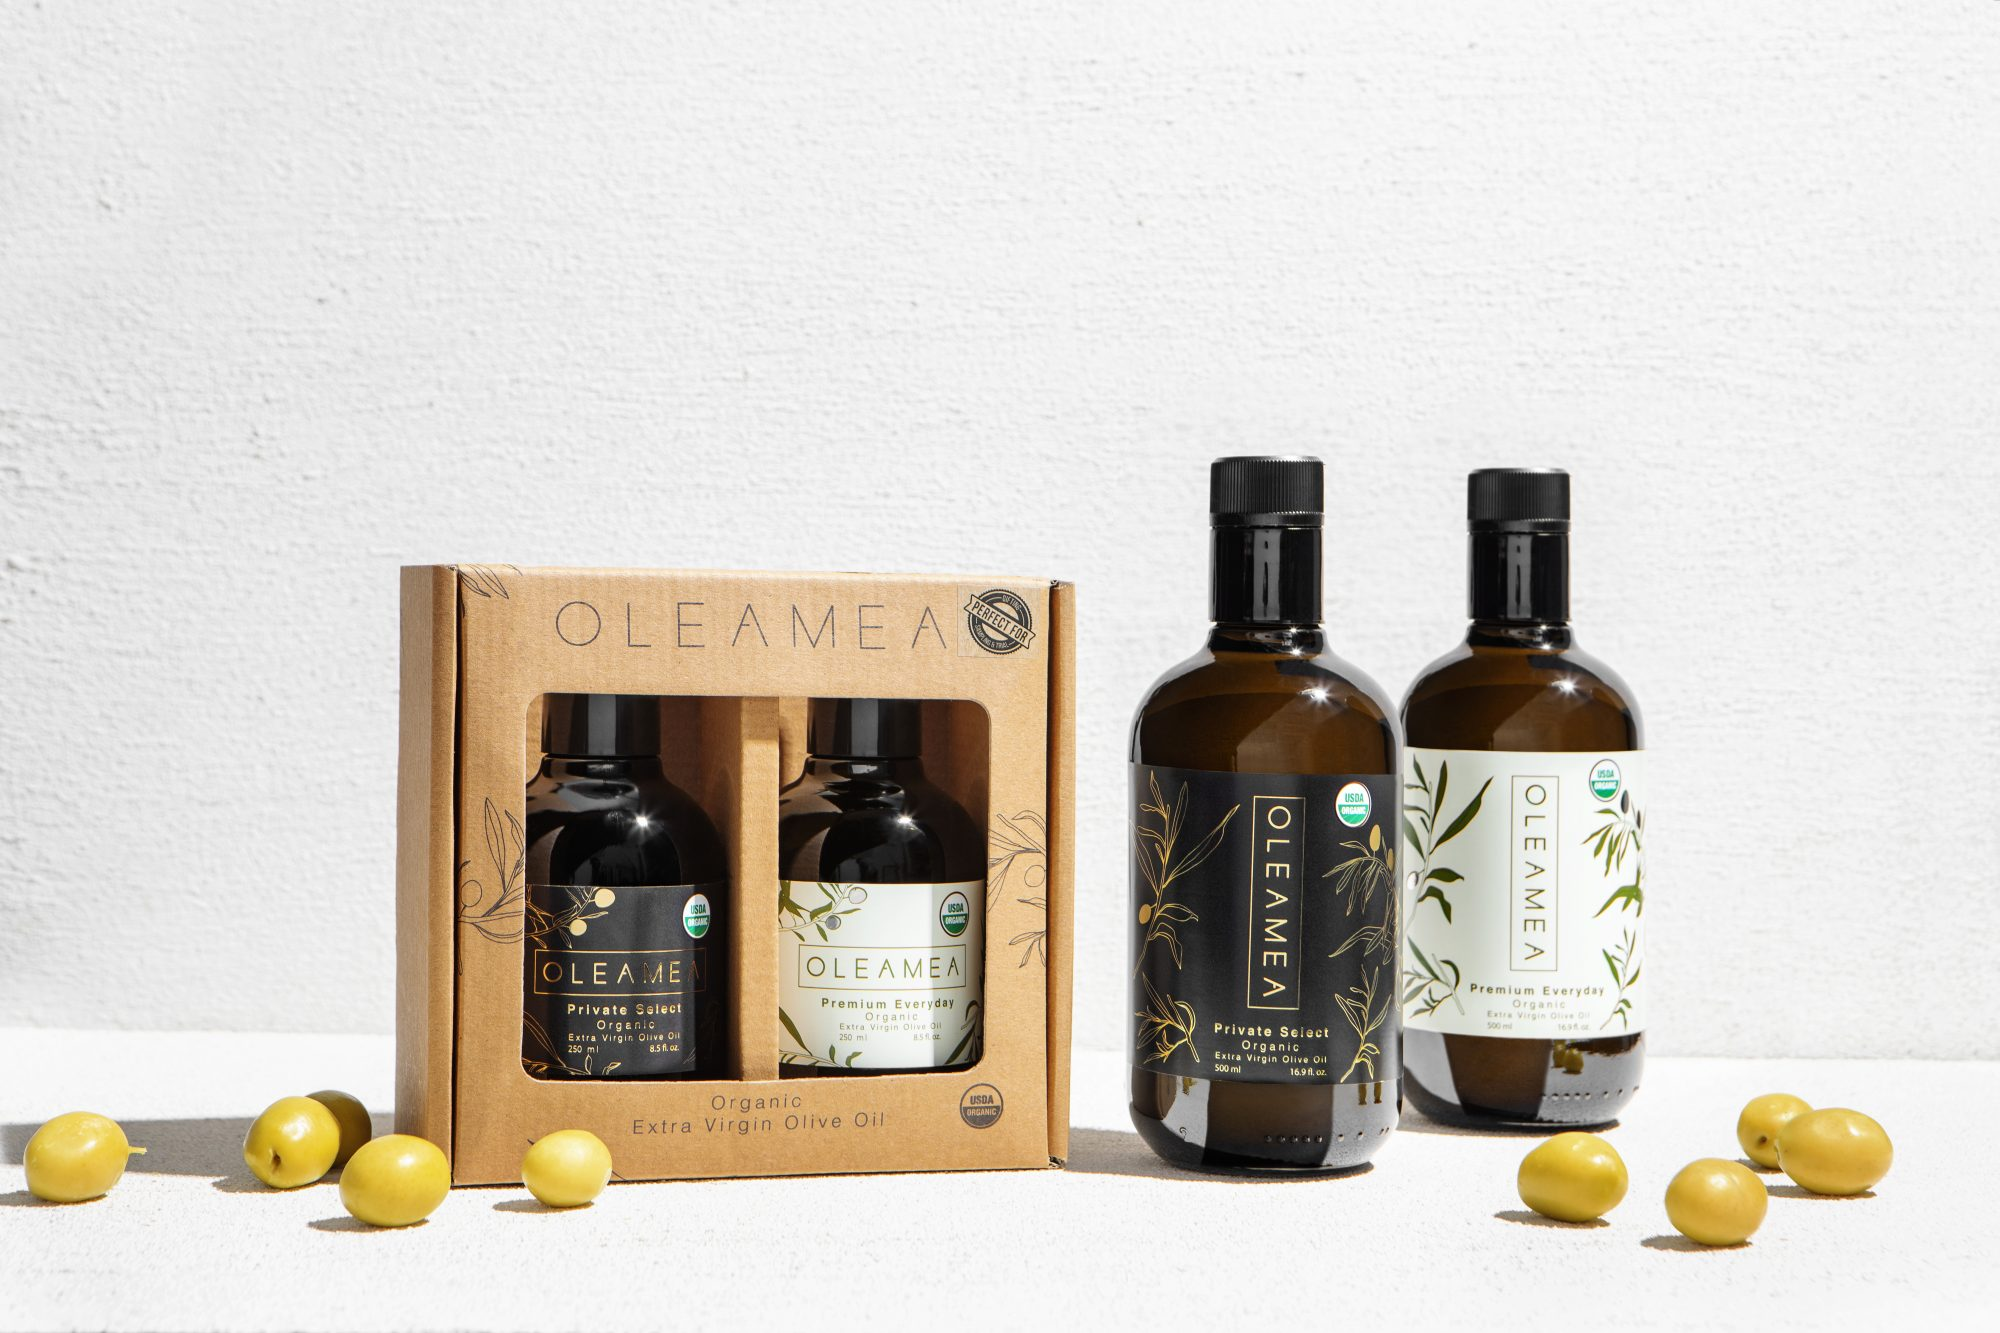 oleamea olive oil set surrounded by lemons